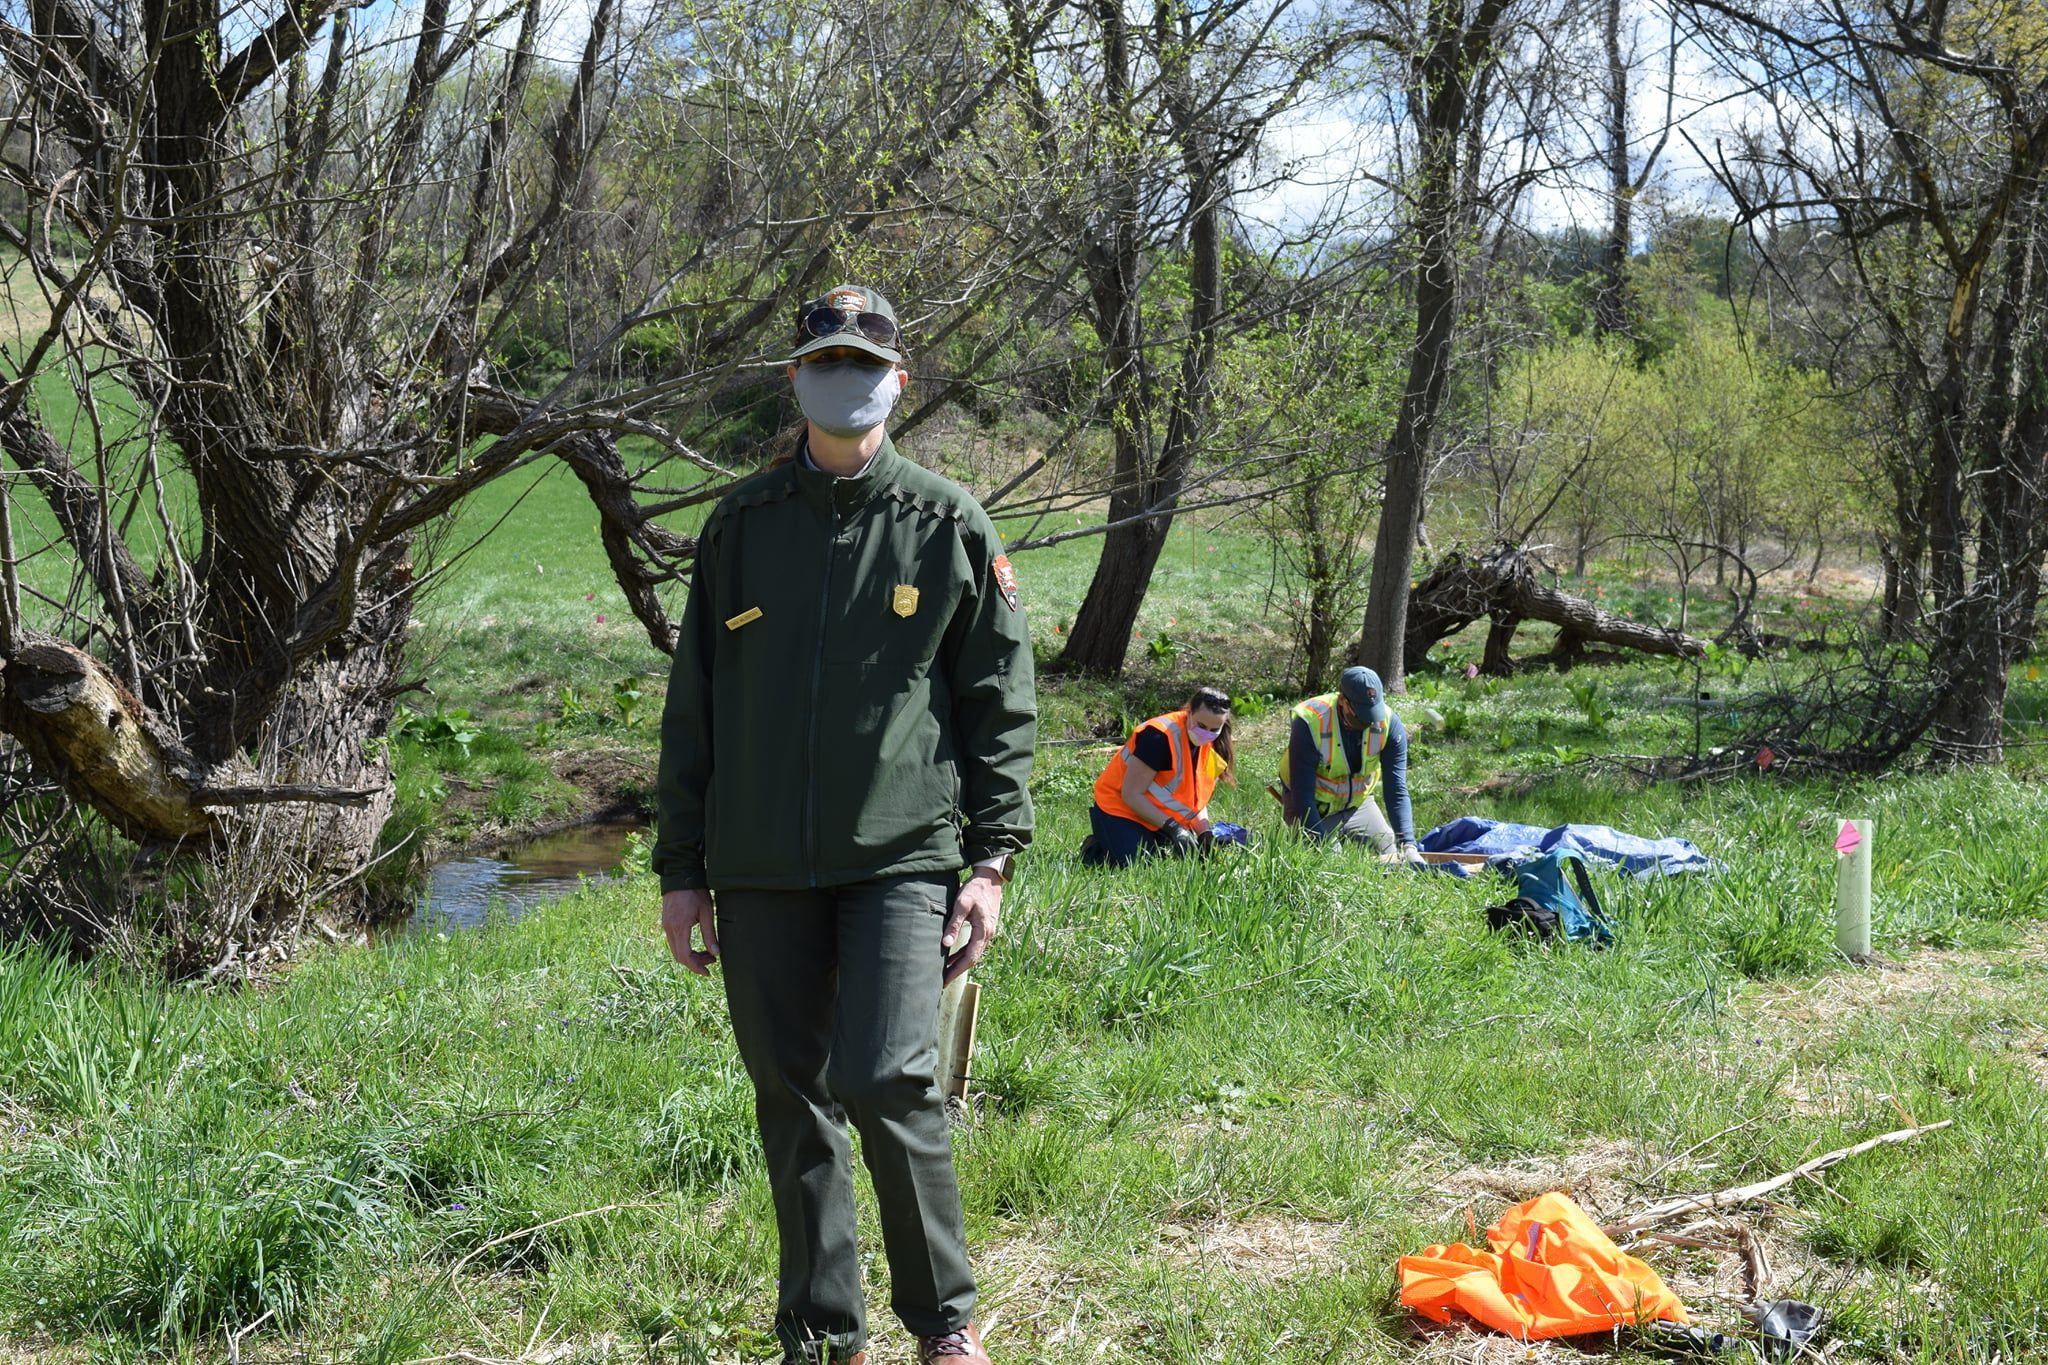 A man wearing a green park rangers uniform poses during a workday at a state park. In the background, two people kneel on the ground planting native plants along an urban stream.